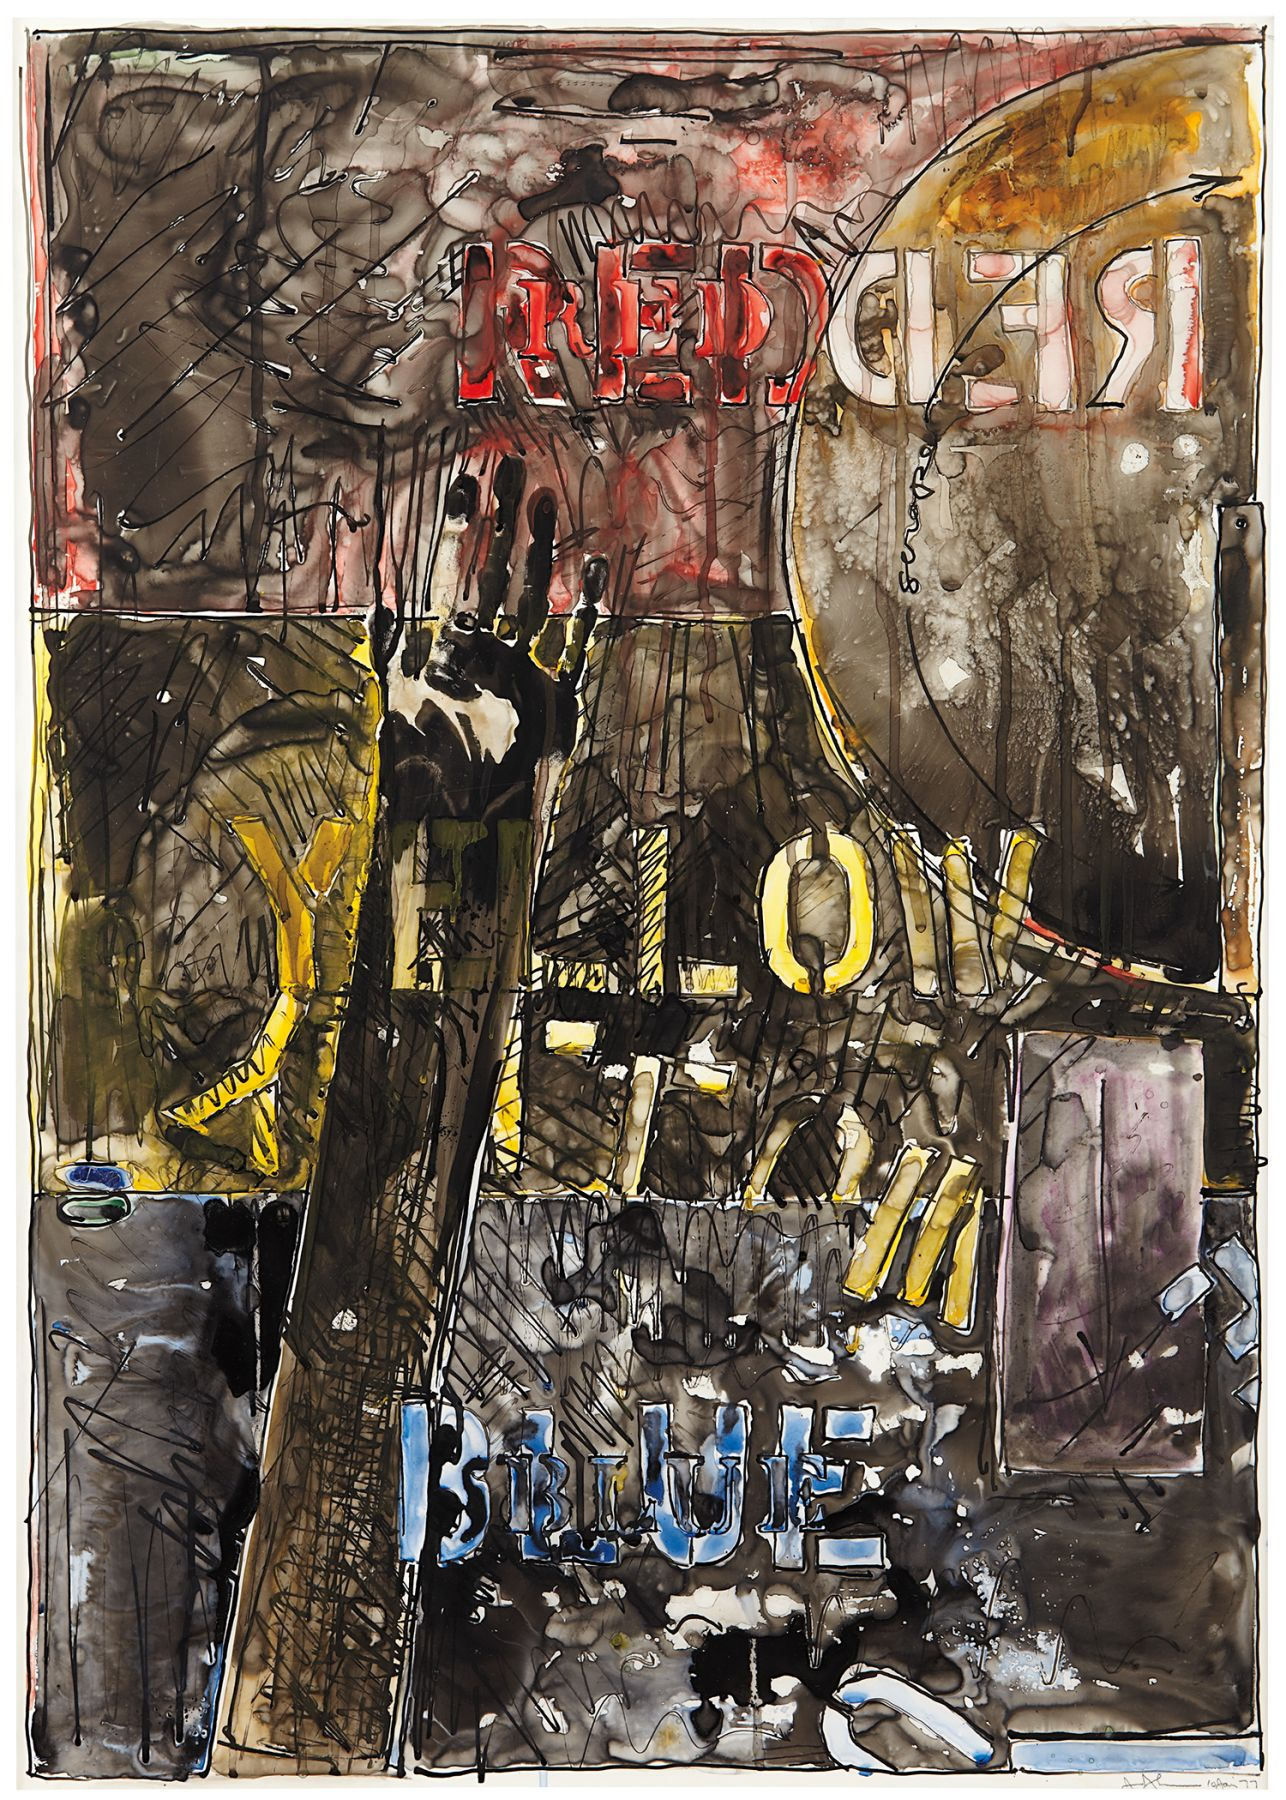 Jasper Johns, Land's End, 1977